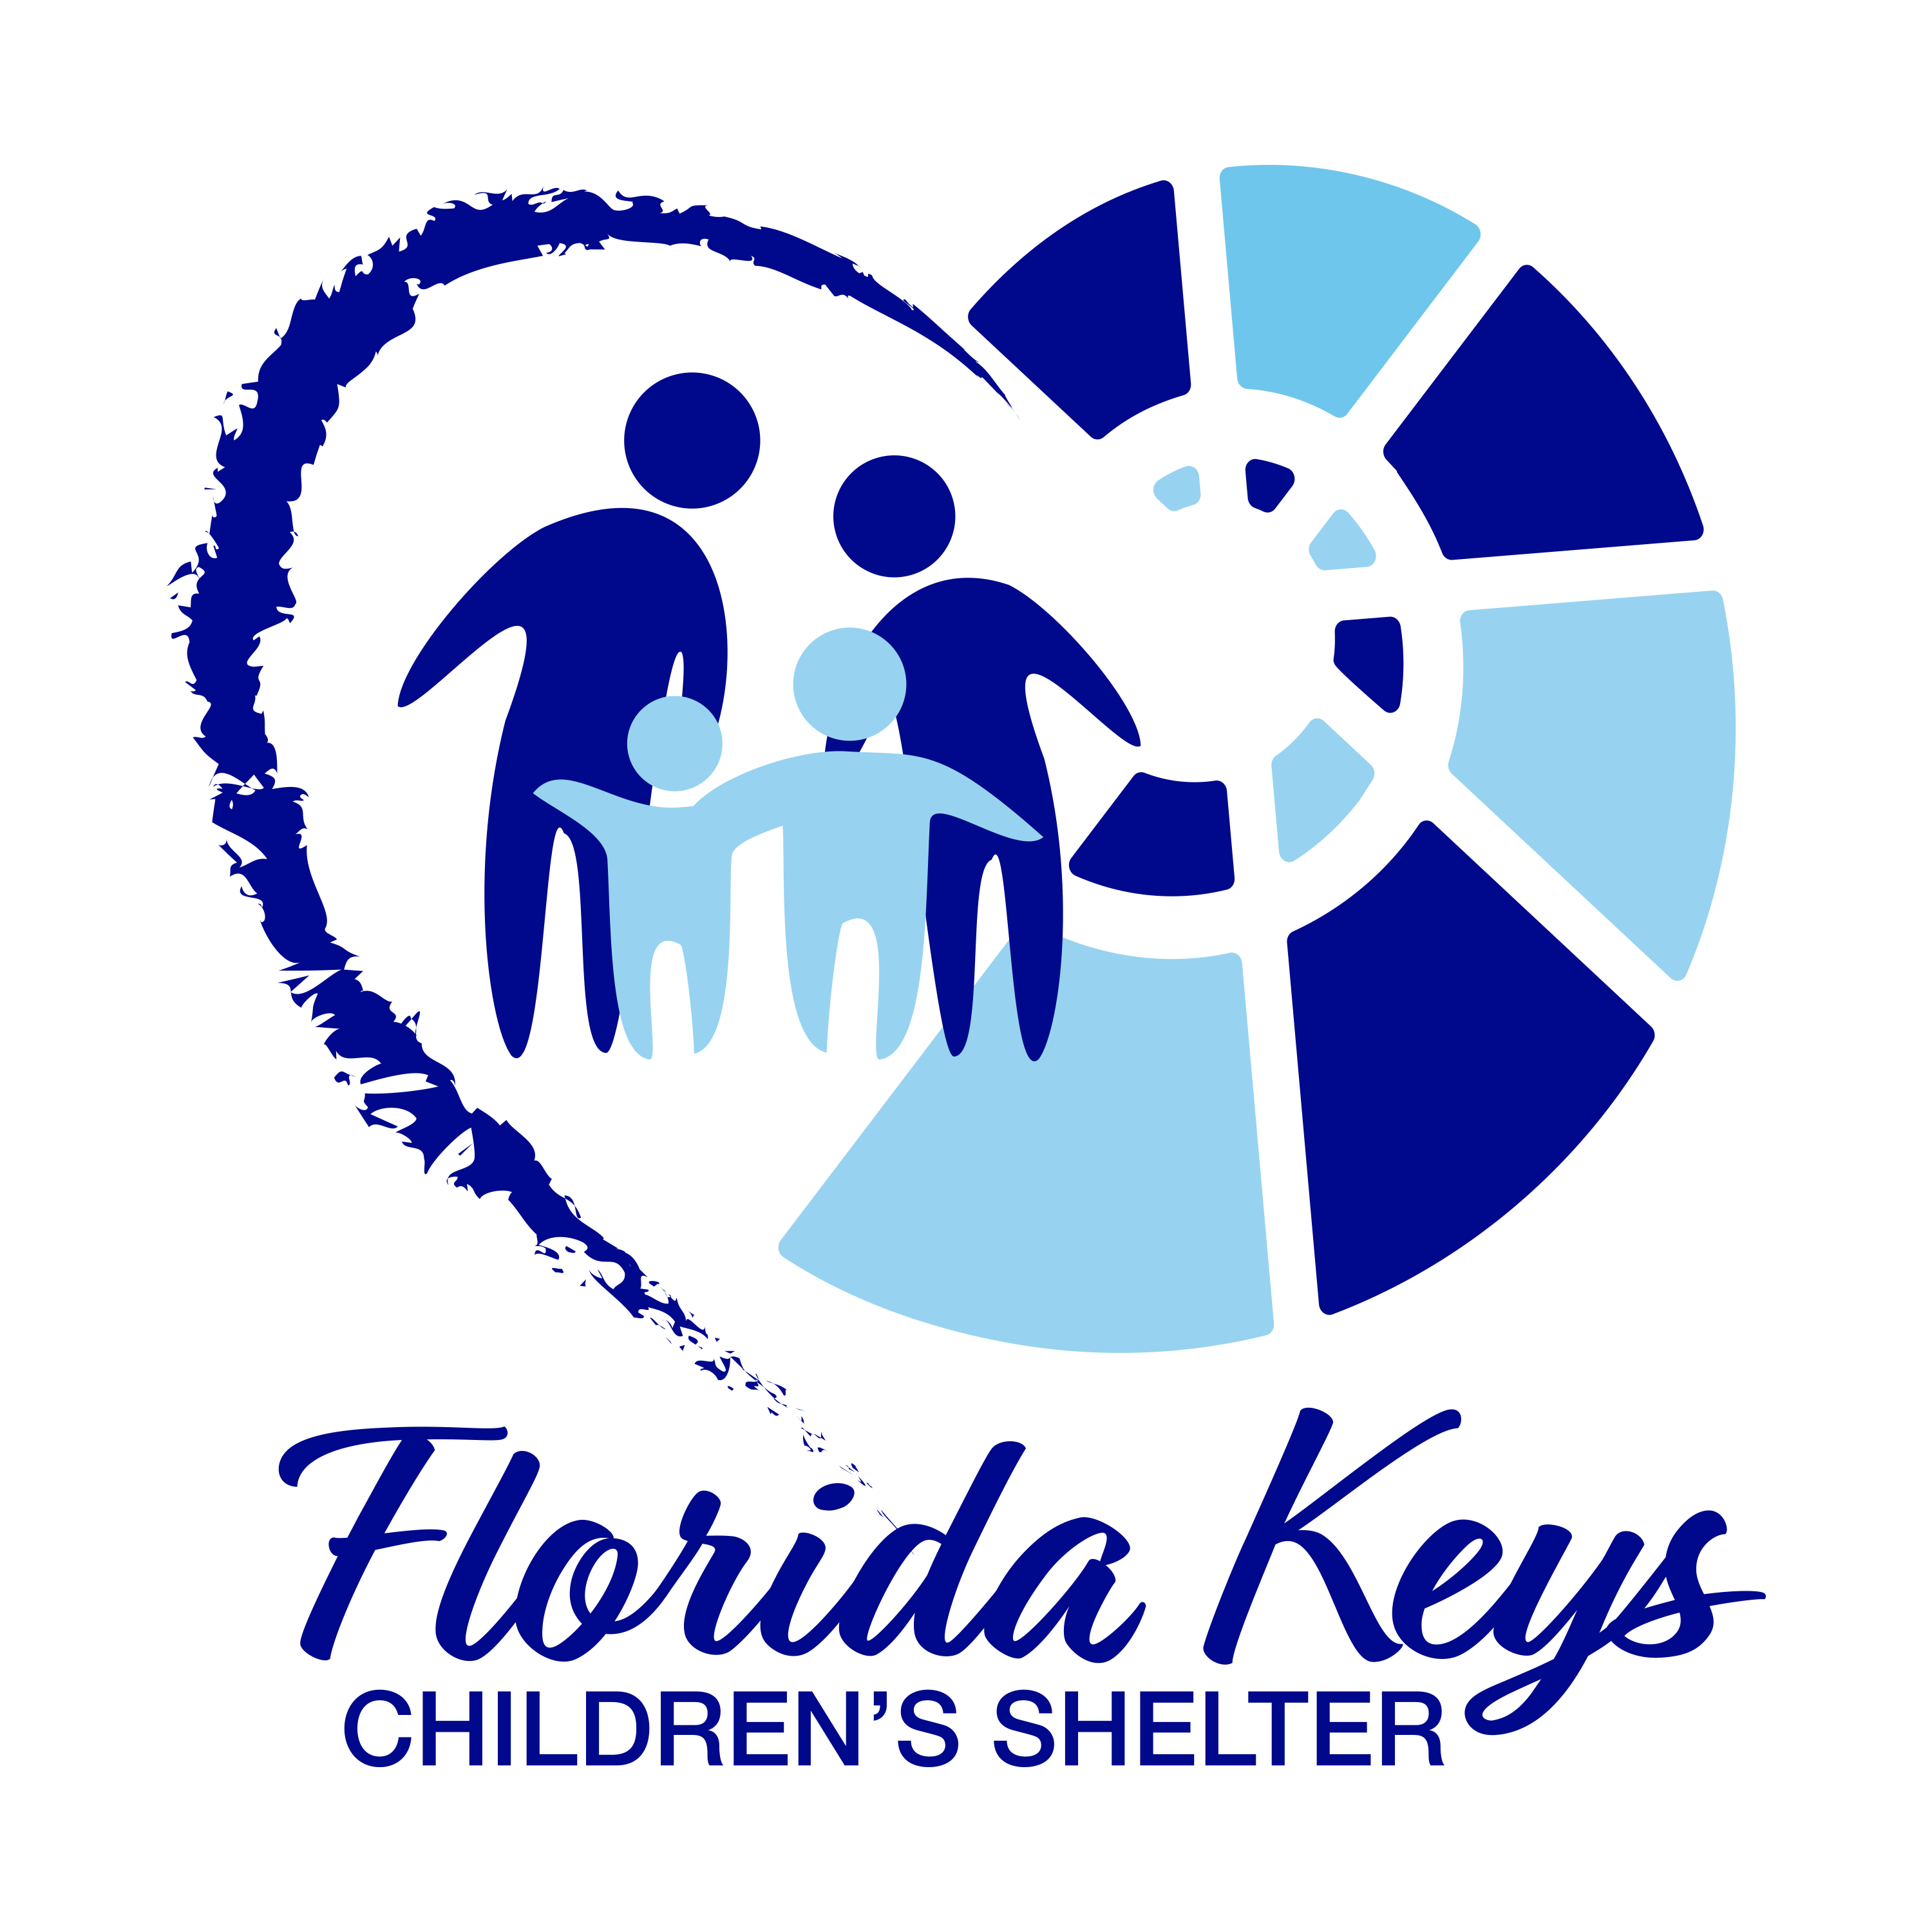 Florida Keys Children's Shelter